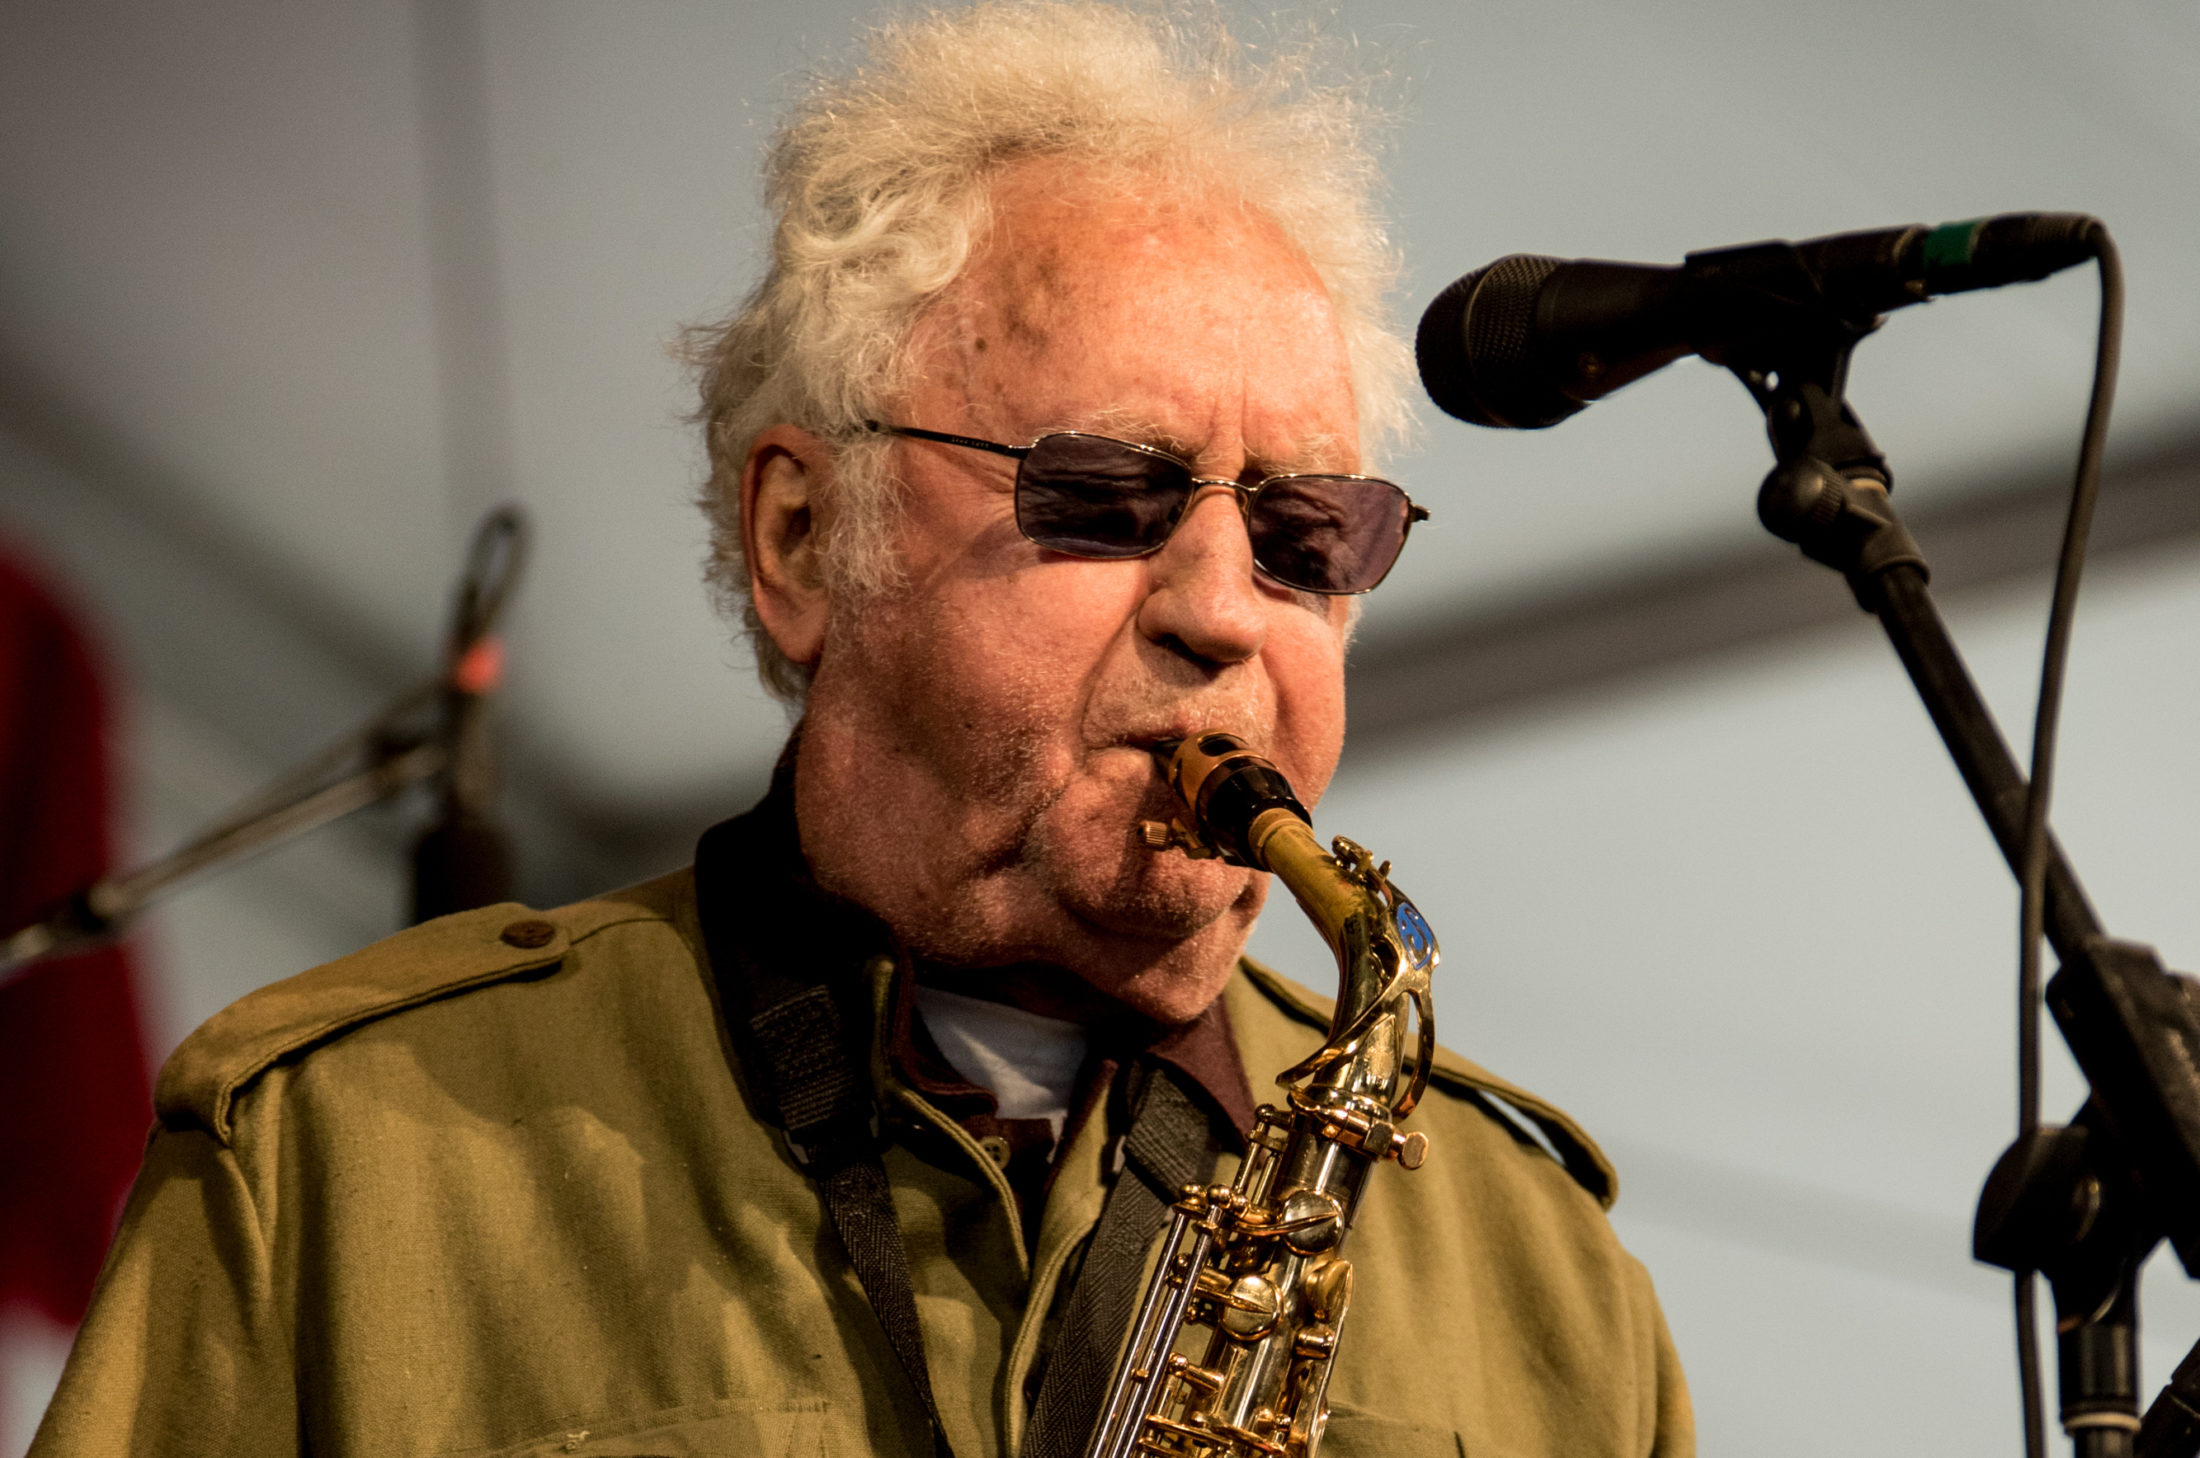 IMG LEON KONITZ, American Composer and Alto Saxophonist